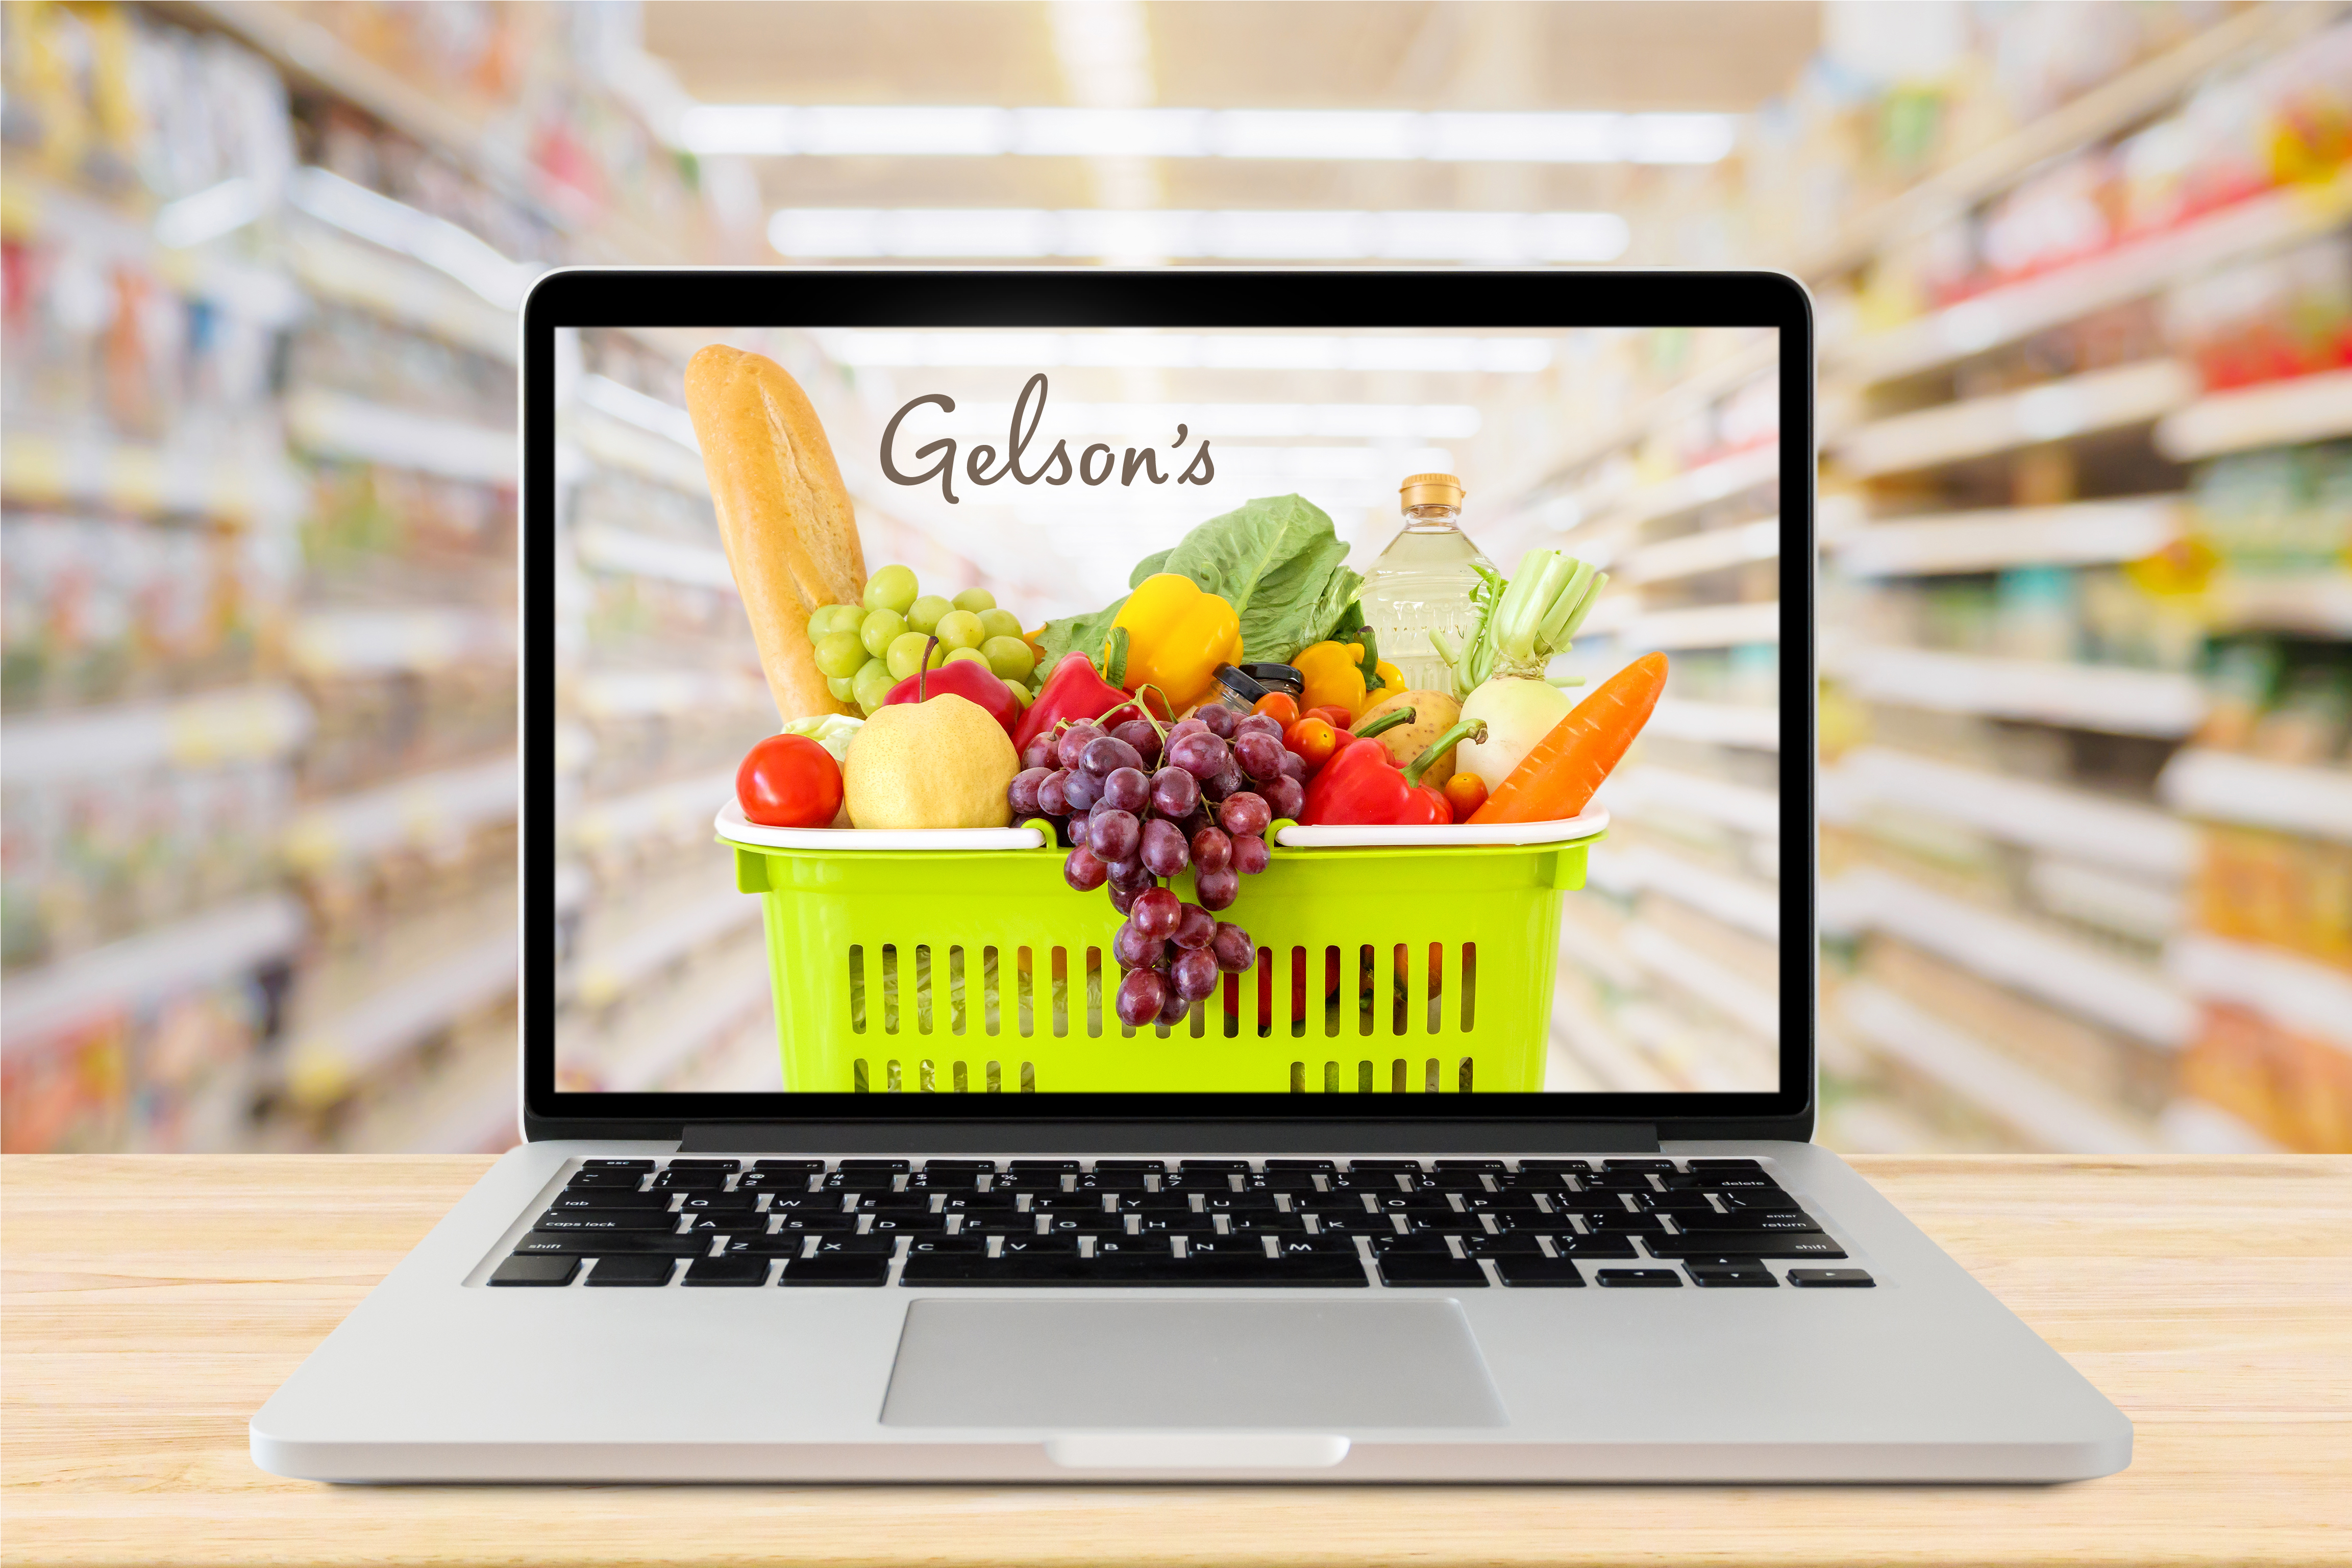 laptop with photo of cart with groceries and Gelson's logo background is blurred grocery store aisle